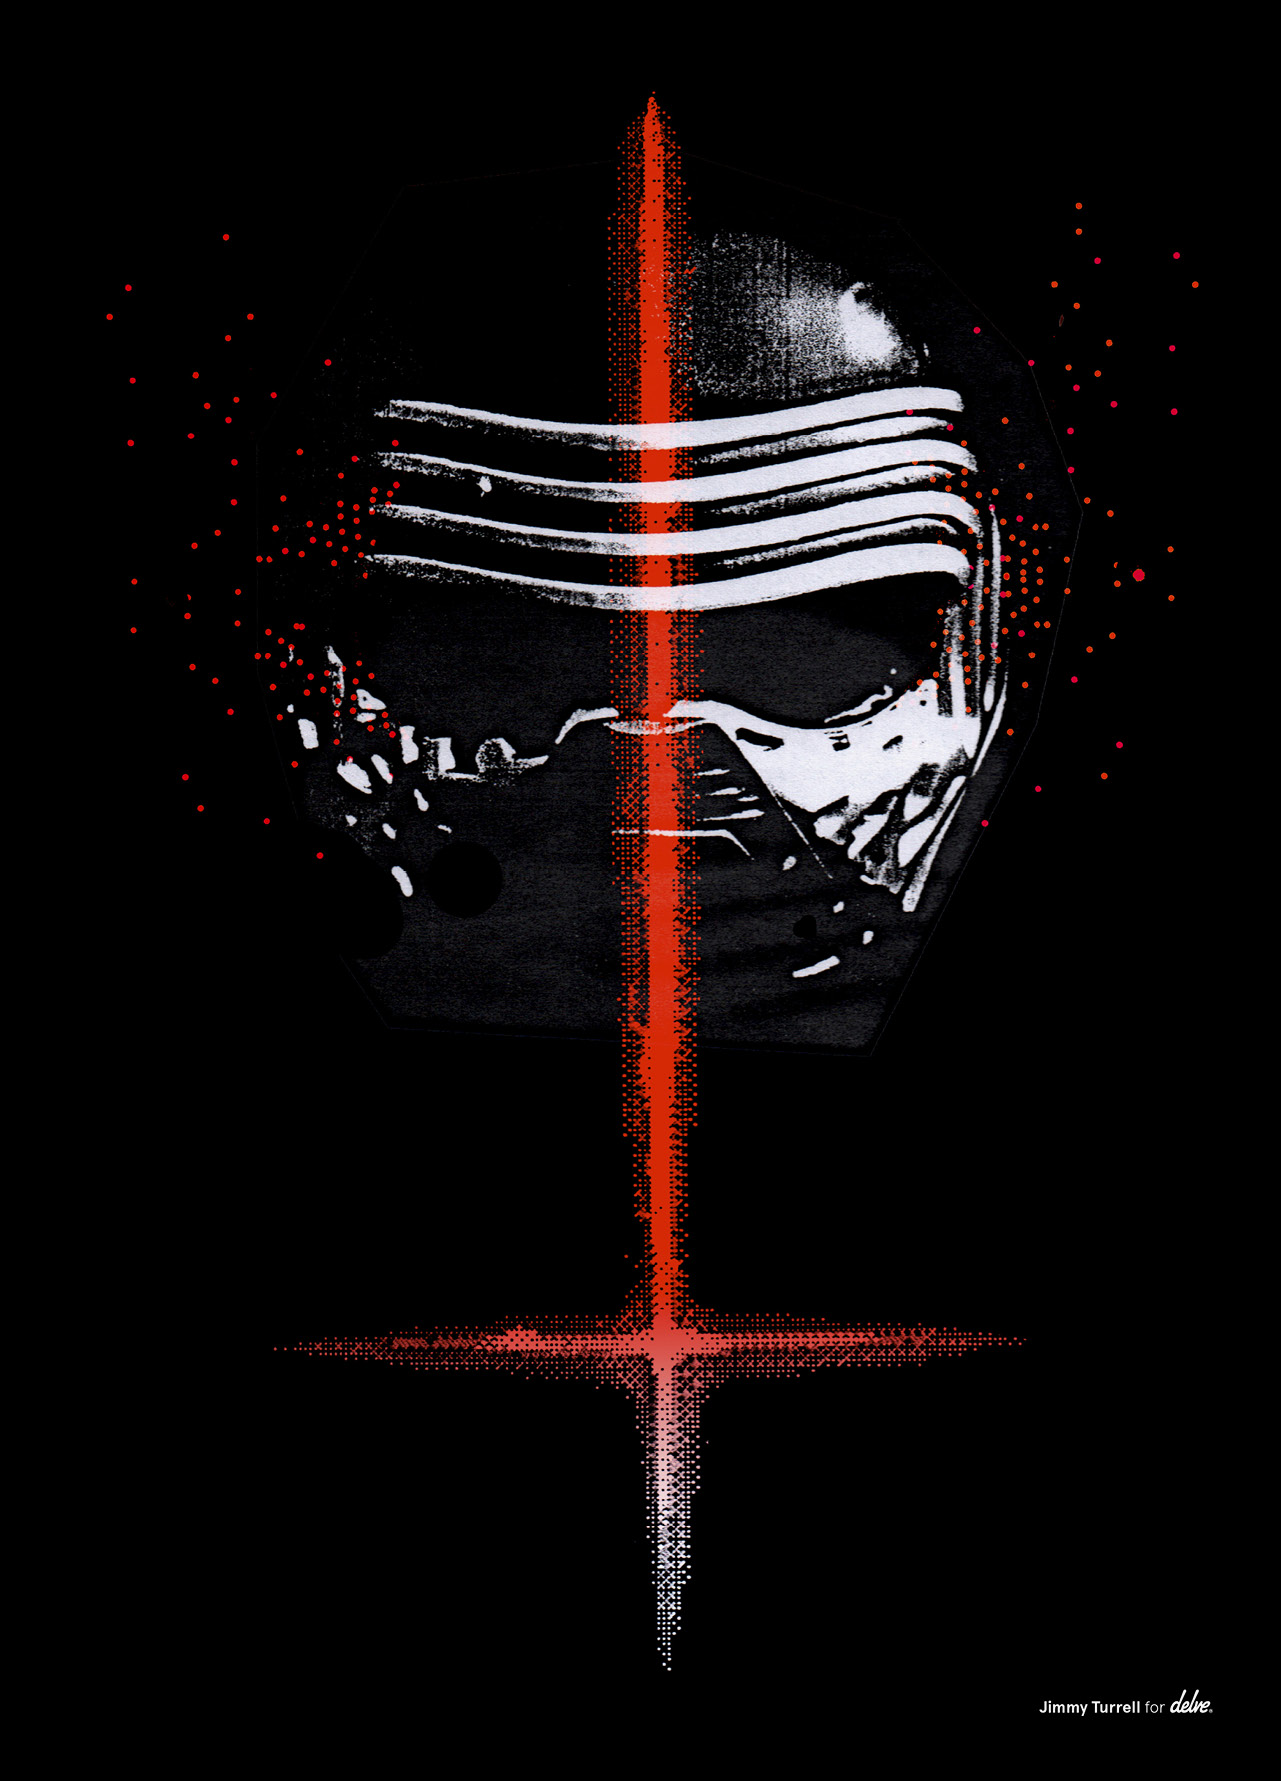 Star Wars: The Force Awakens by Jimmy Turrell